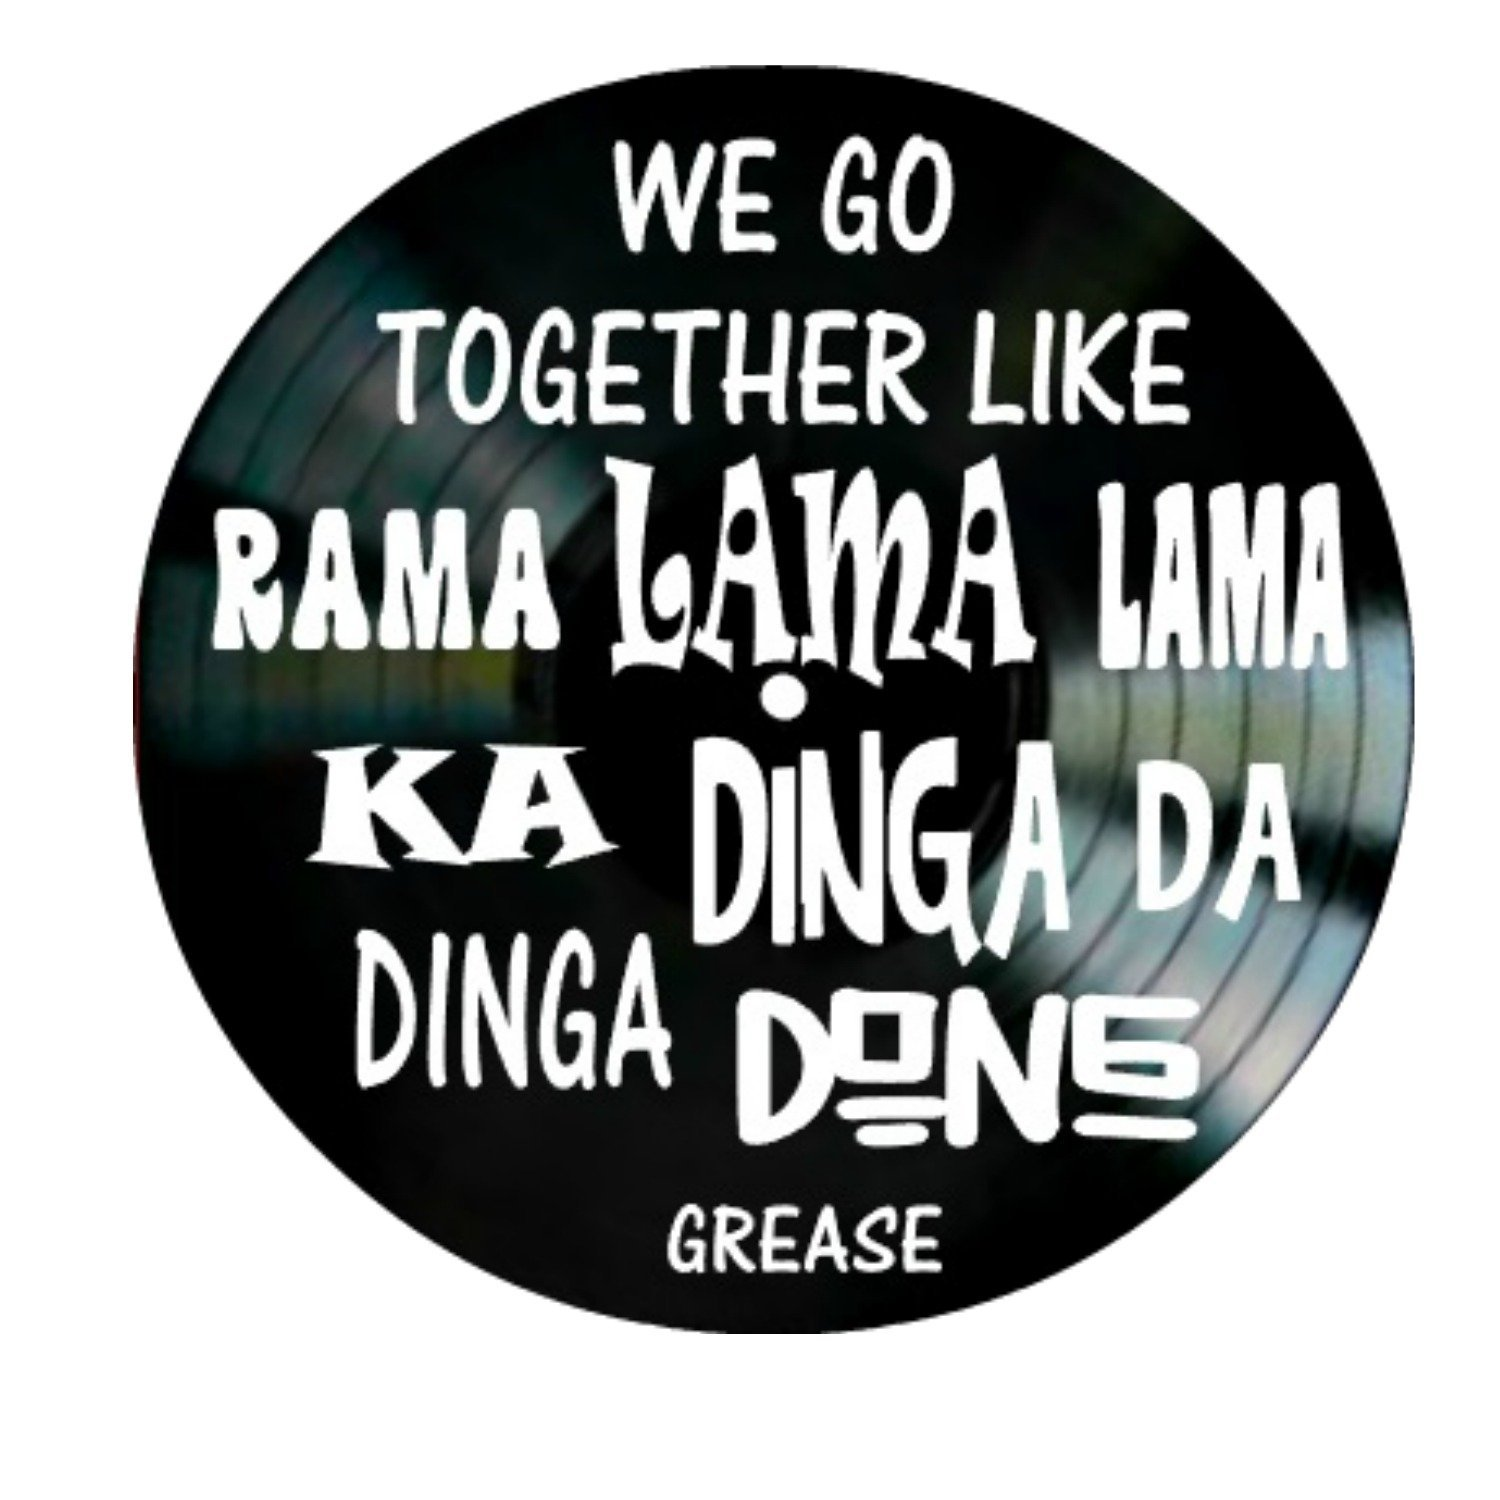 We Go Together song lyrics from the musical Grease on a Vinyl Record Album Wall Art